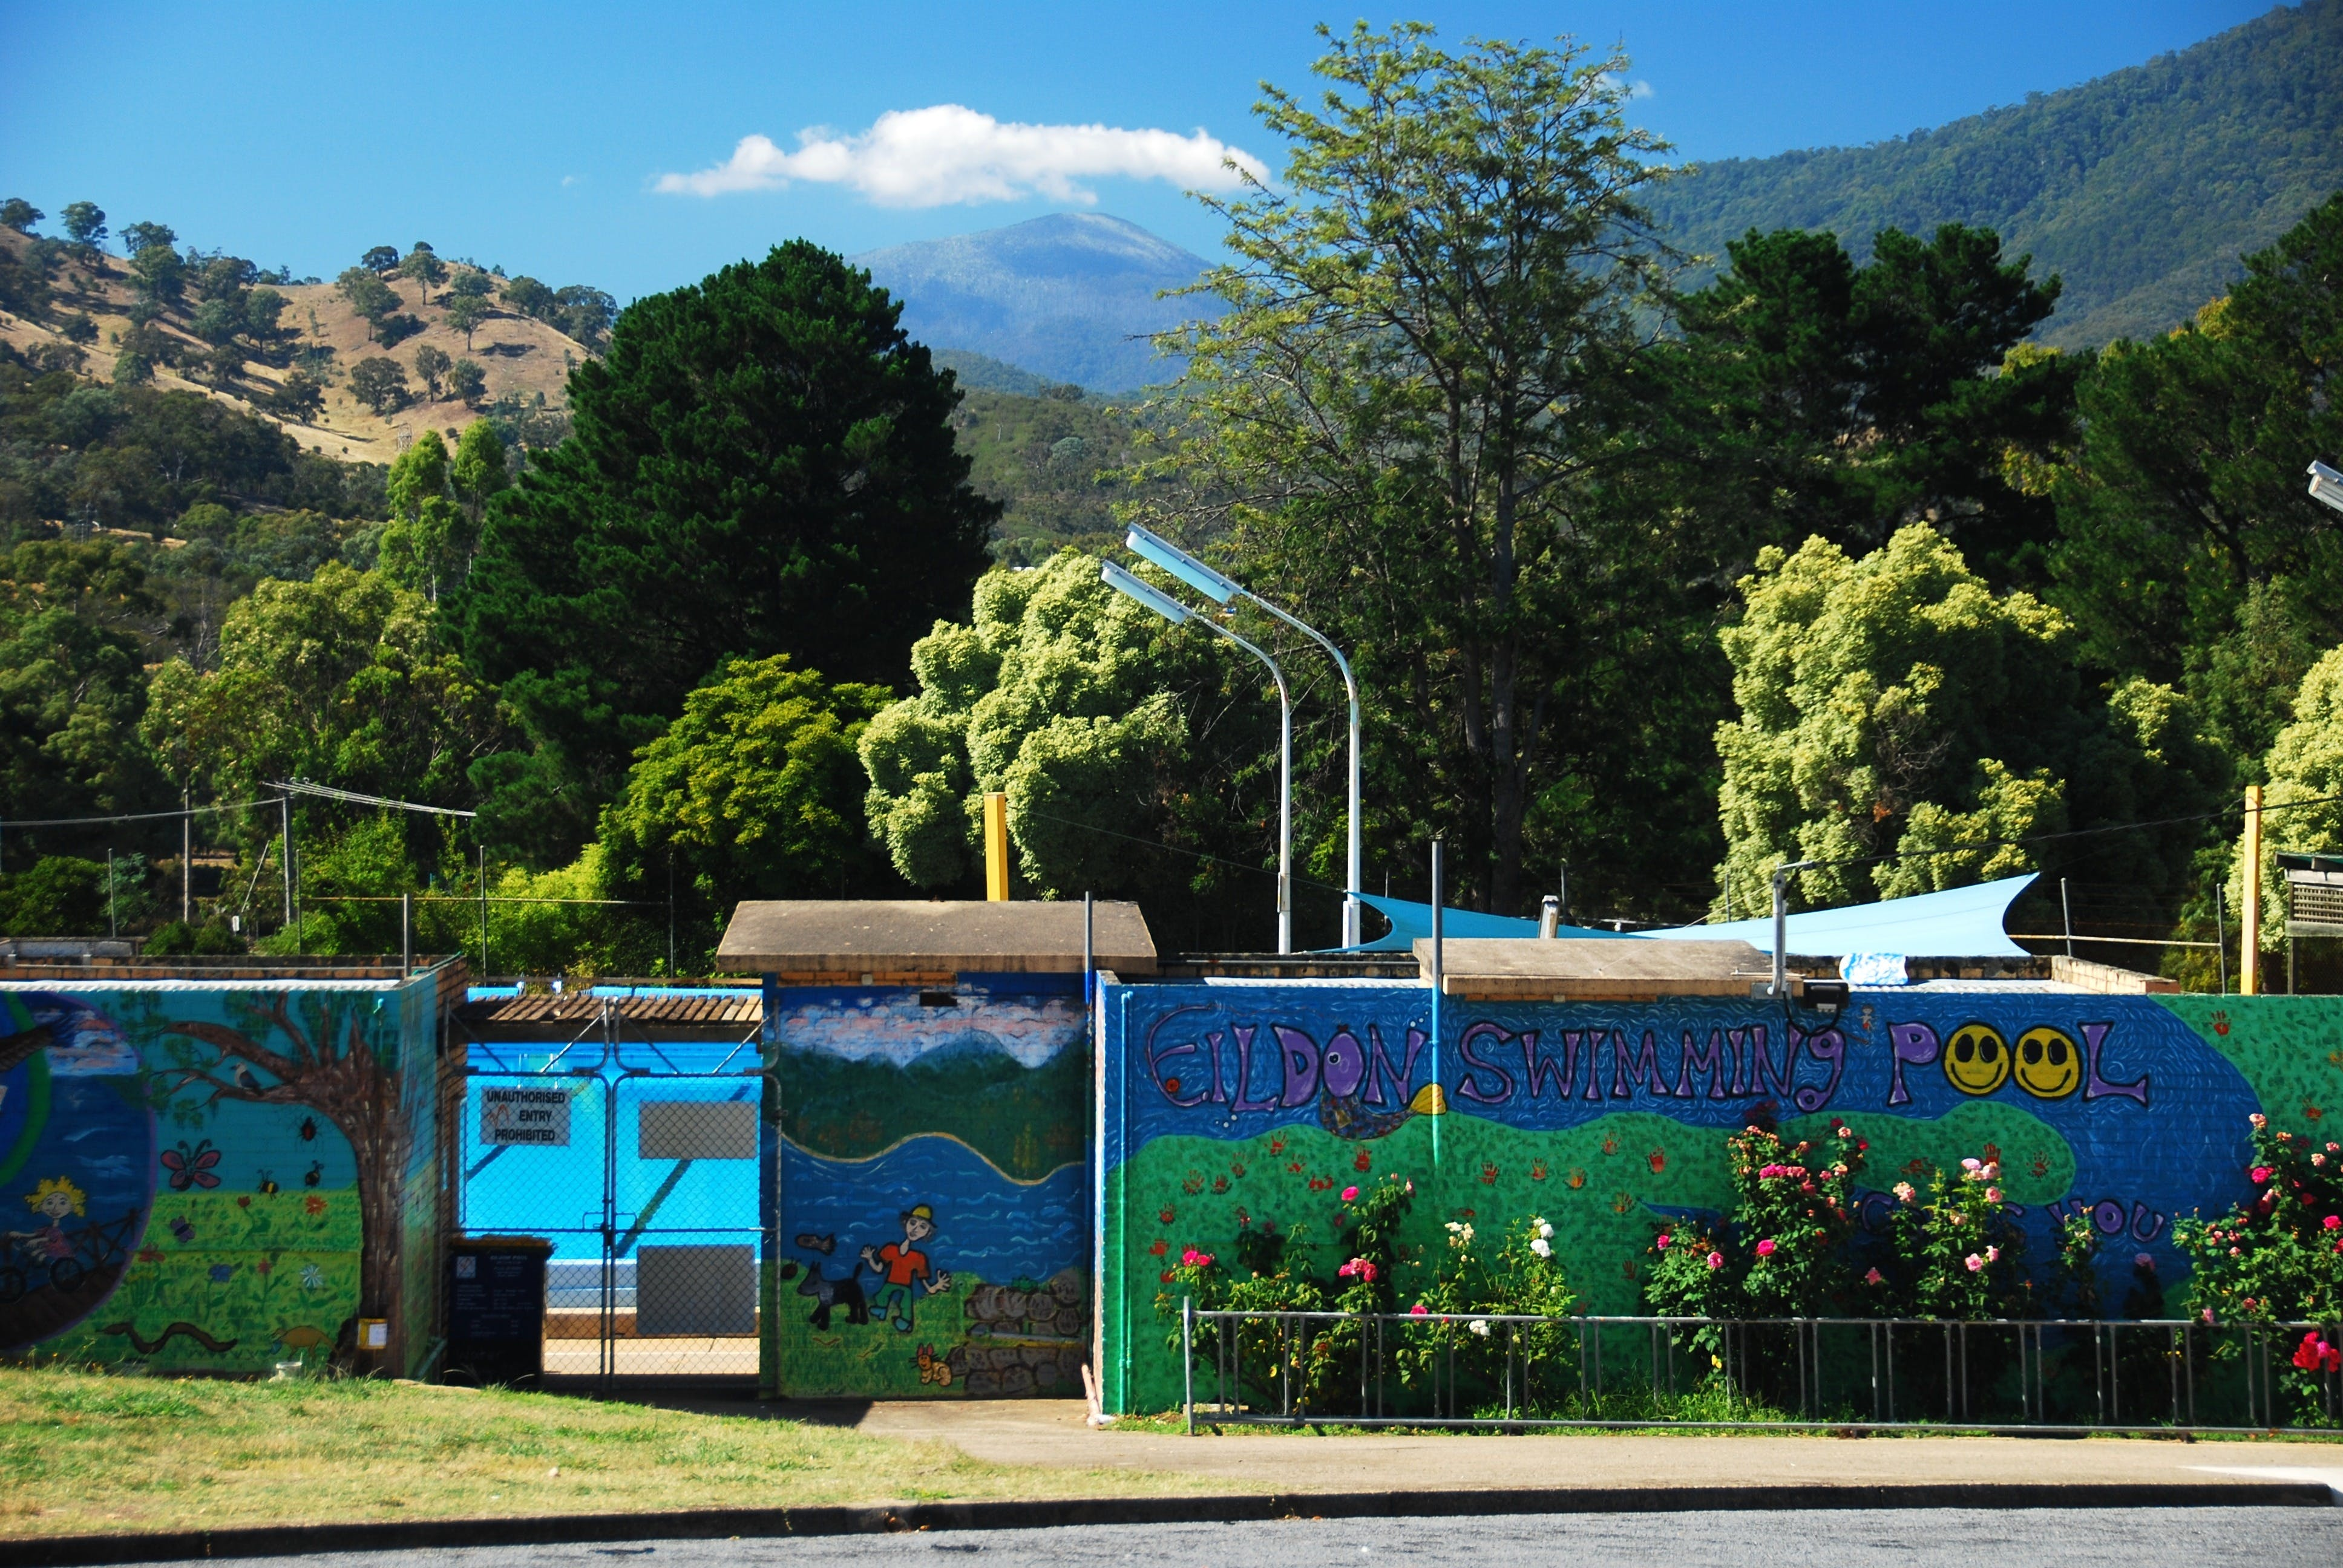 Eildon Outdoor Swimming Pool - Surfers Gold Coast